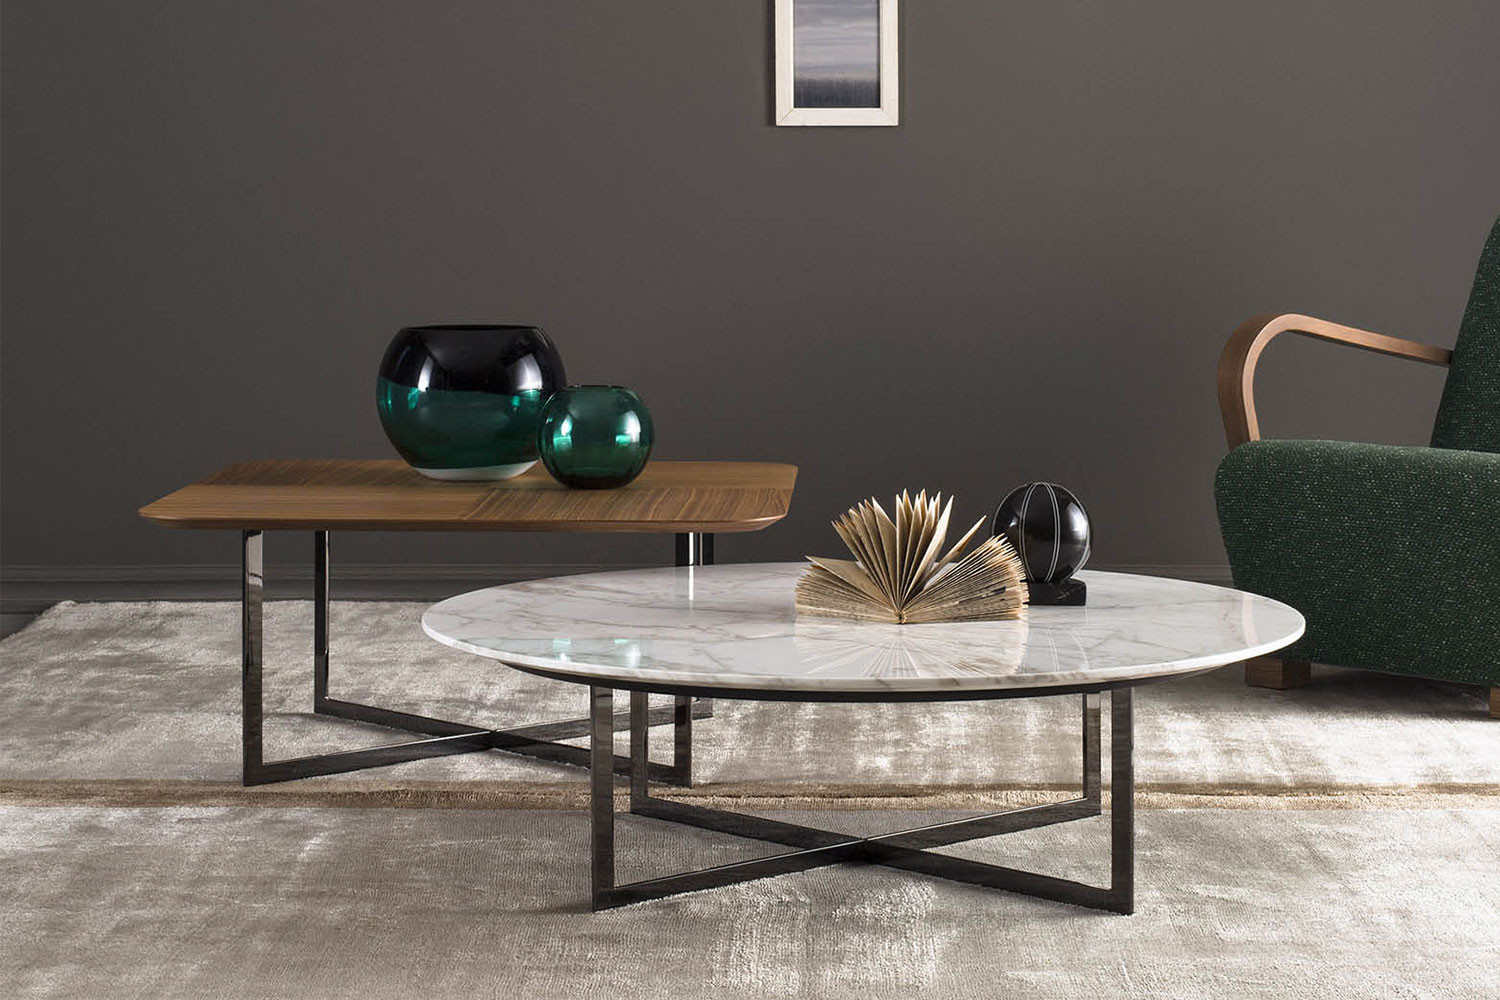 2 piece coffee table set, one round and one square in two heights